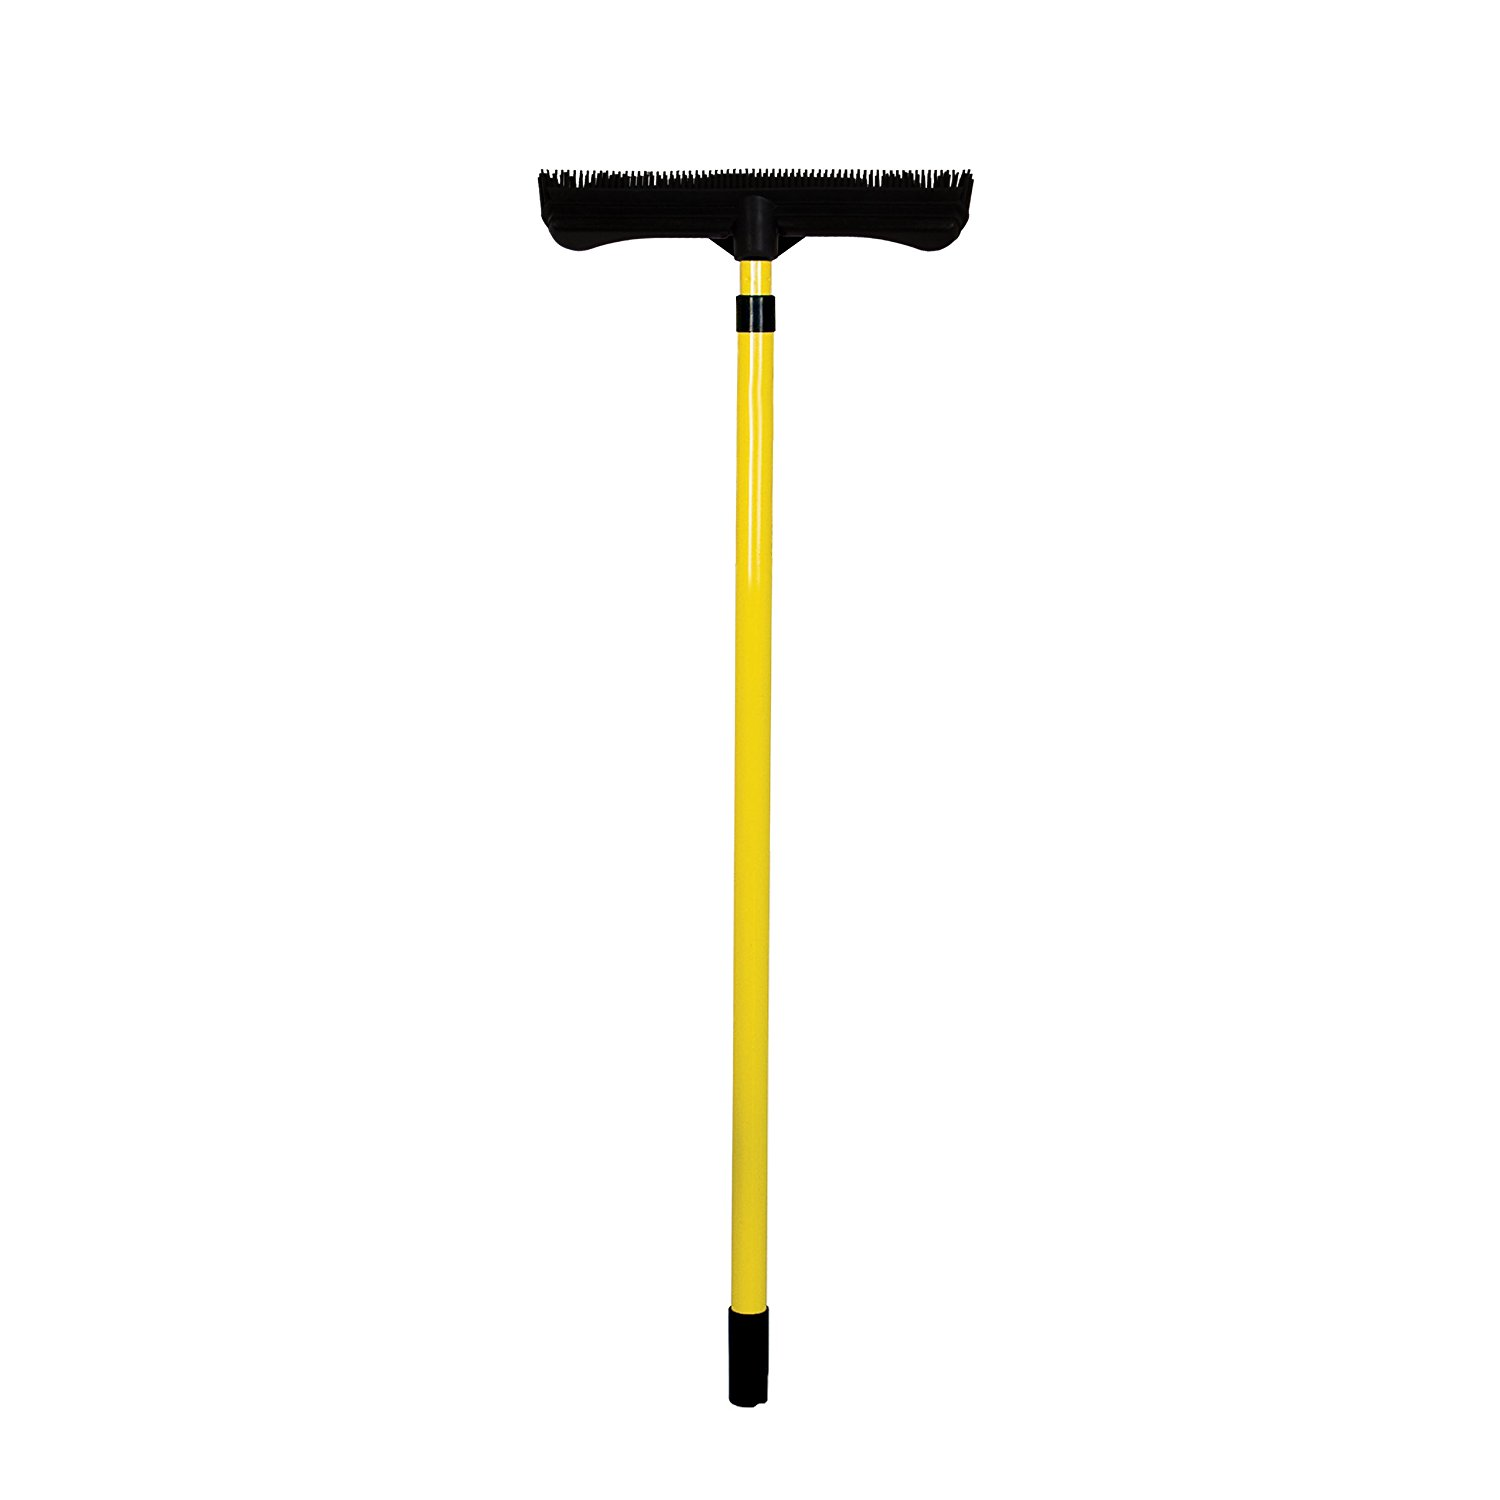 Evriholder Furemover Broom with Squeegee